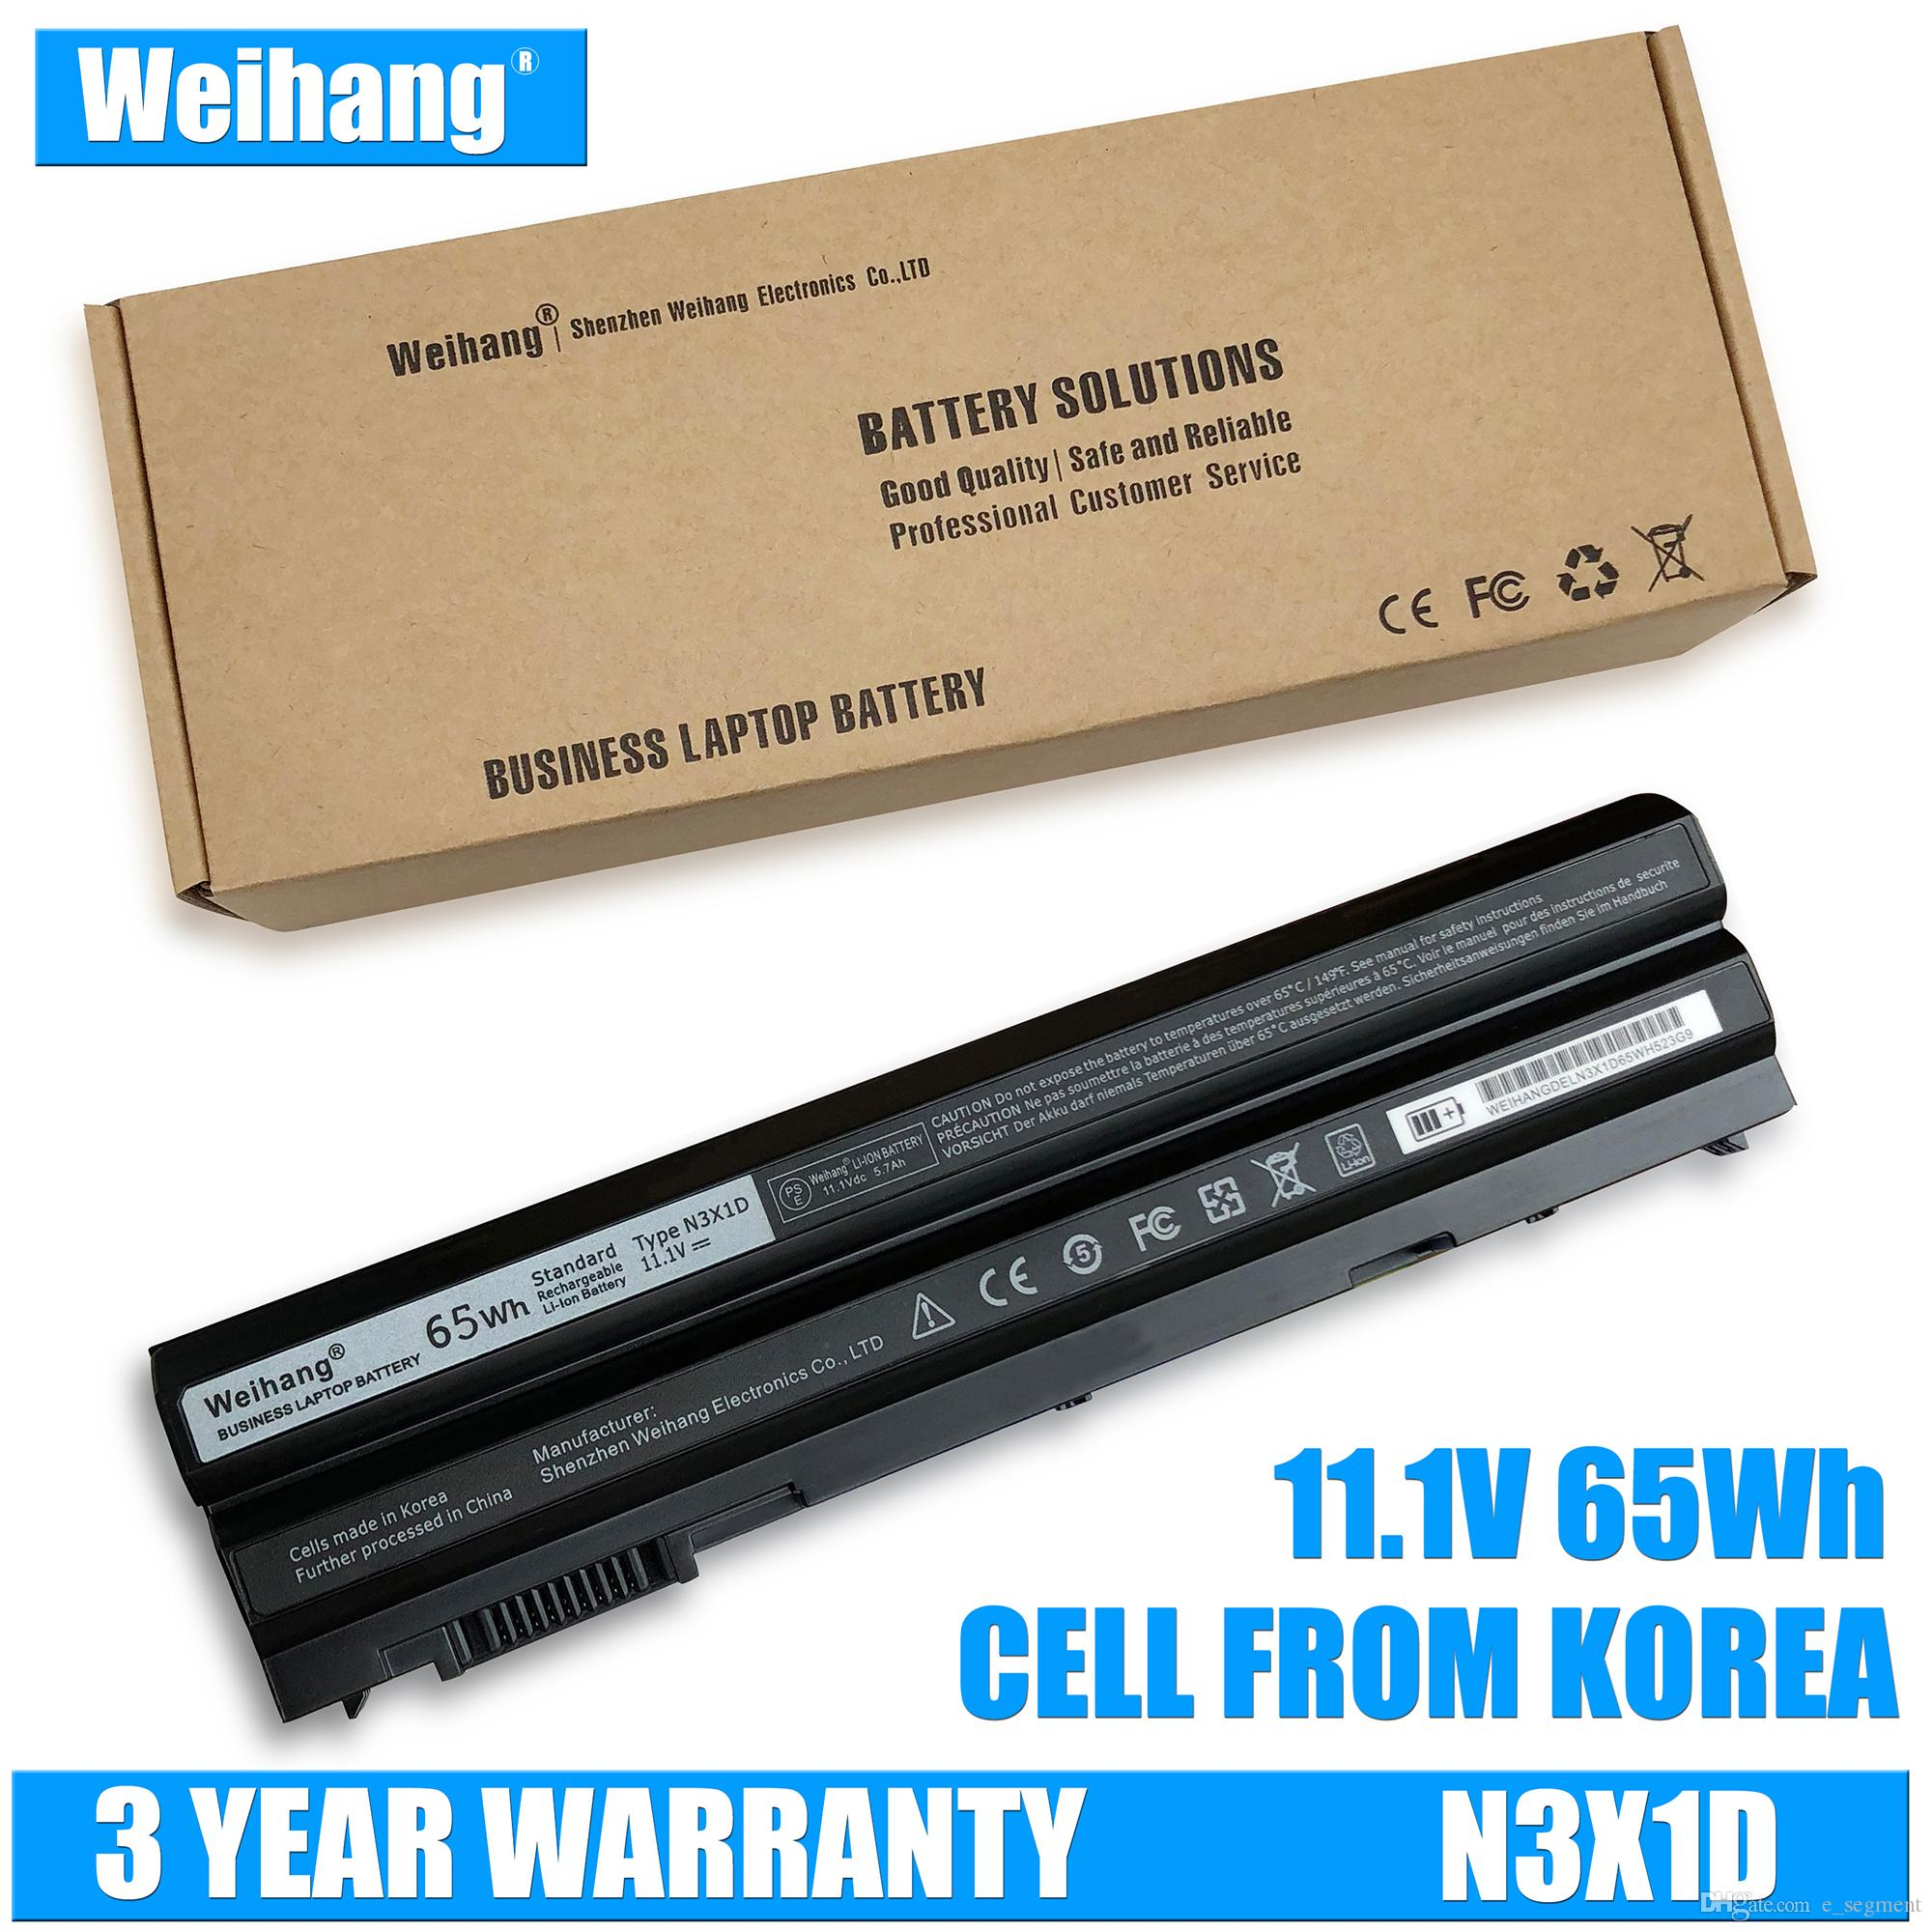 Korea Cell Weihang Battery For 65WH N3X1D Laptop Battery for DELL Latitude  E5420 E5430 E5520 E5530 E6420 E6520 E6430 E6440 E6530